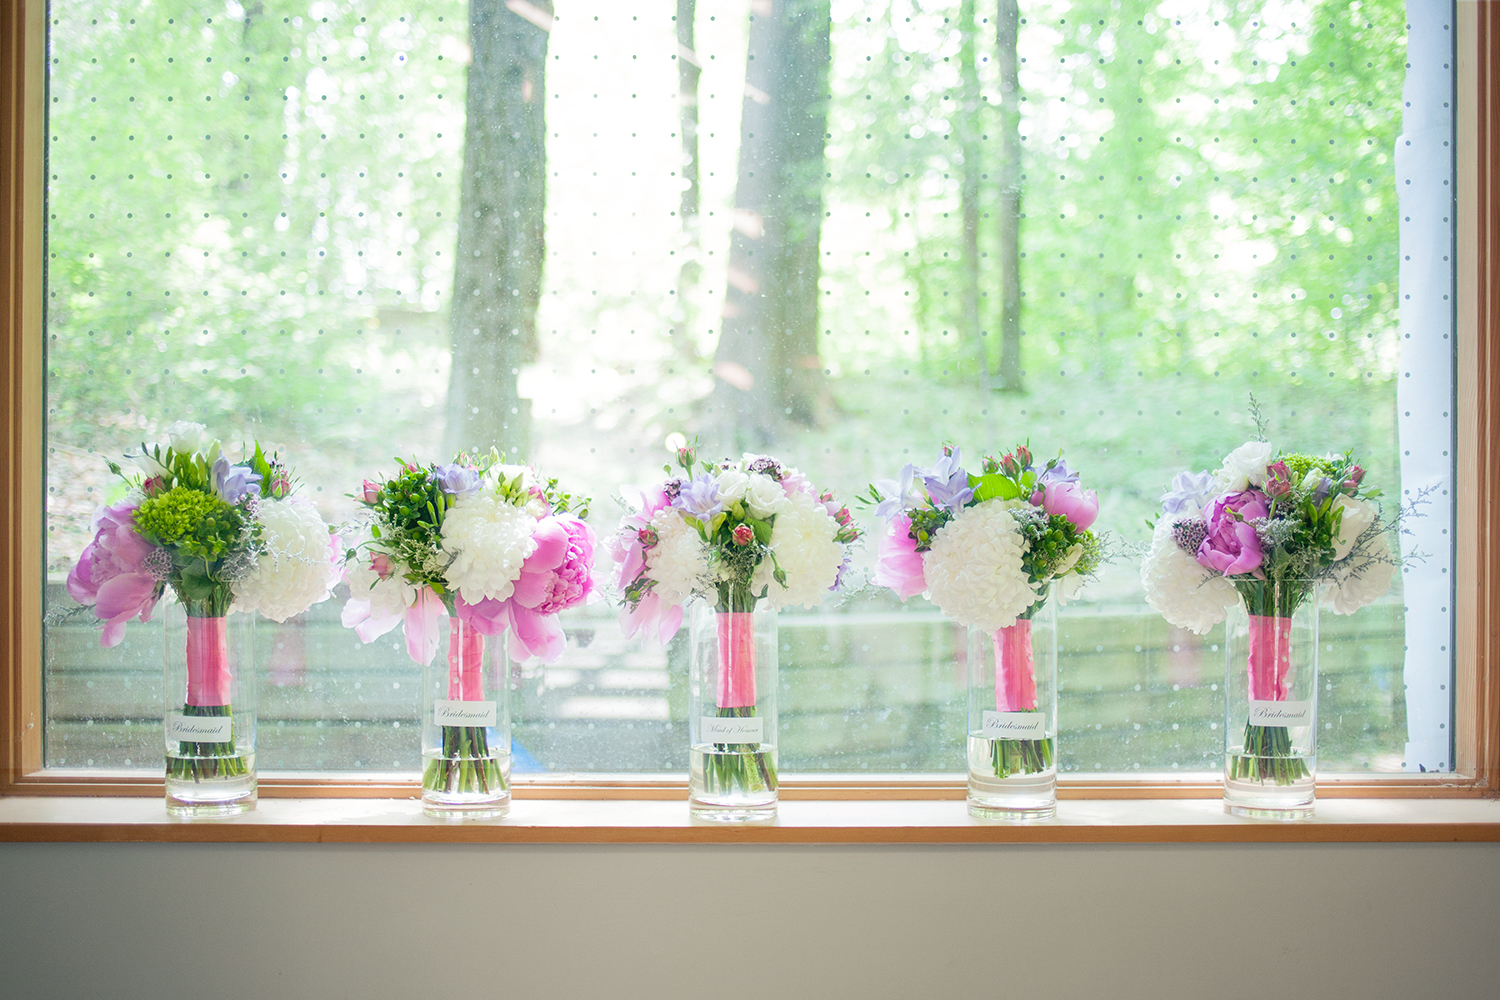 vases with flowers in window